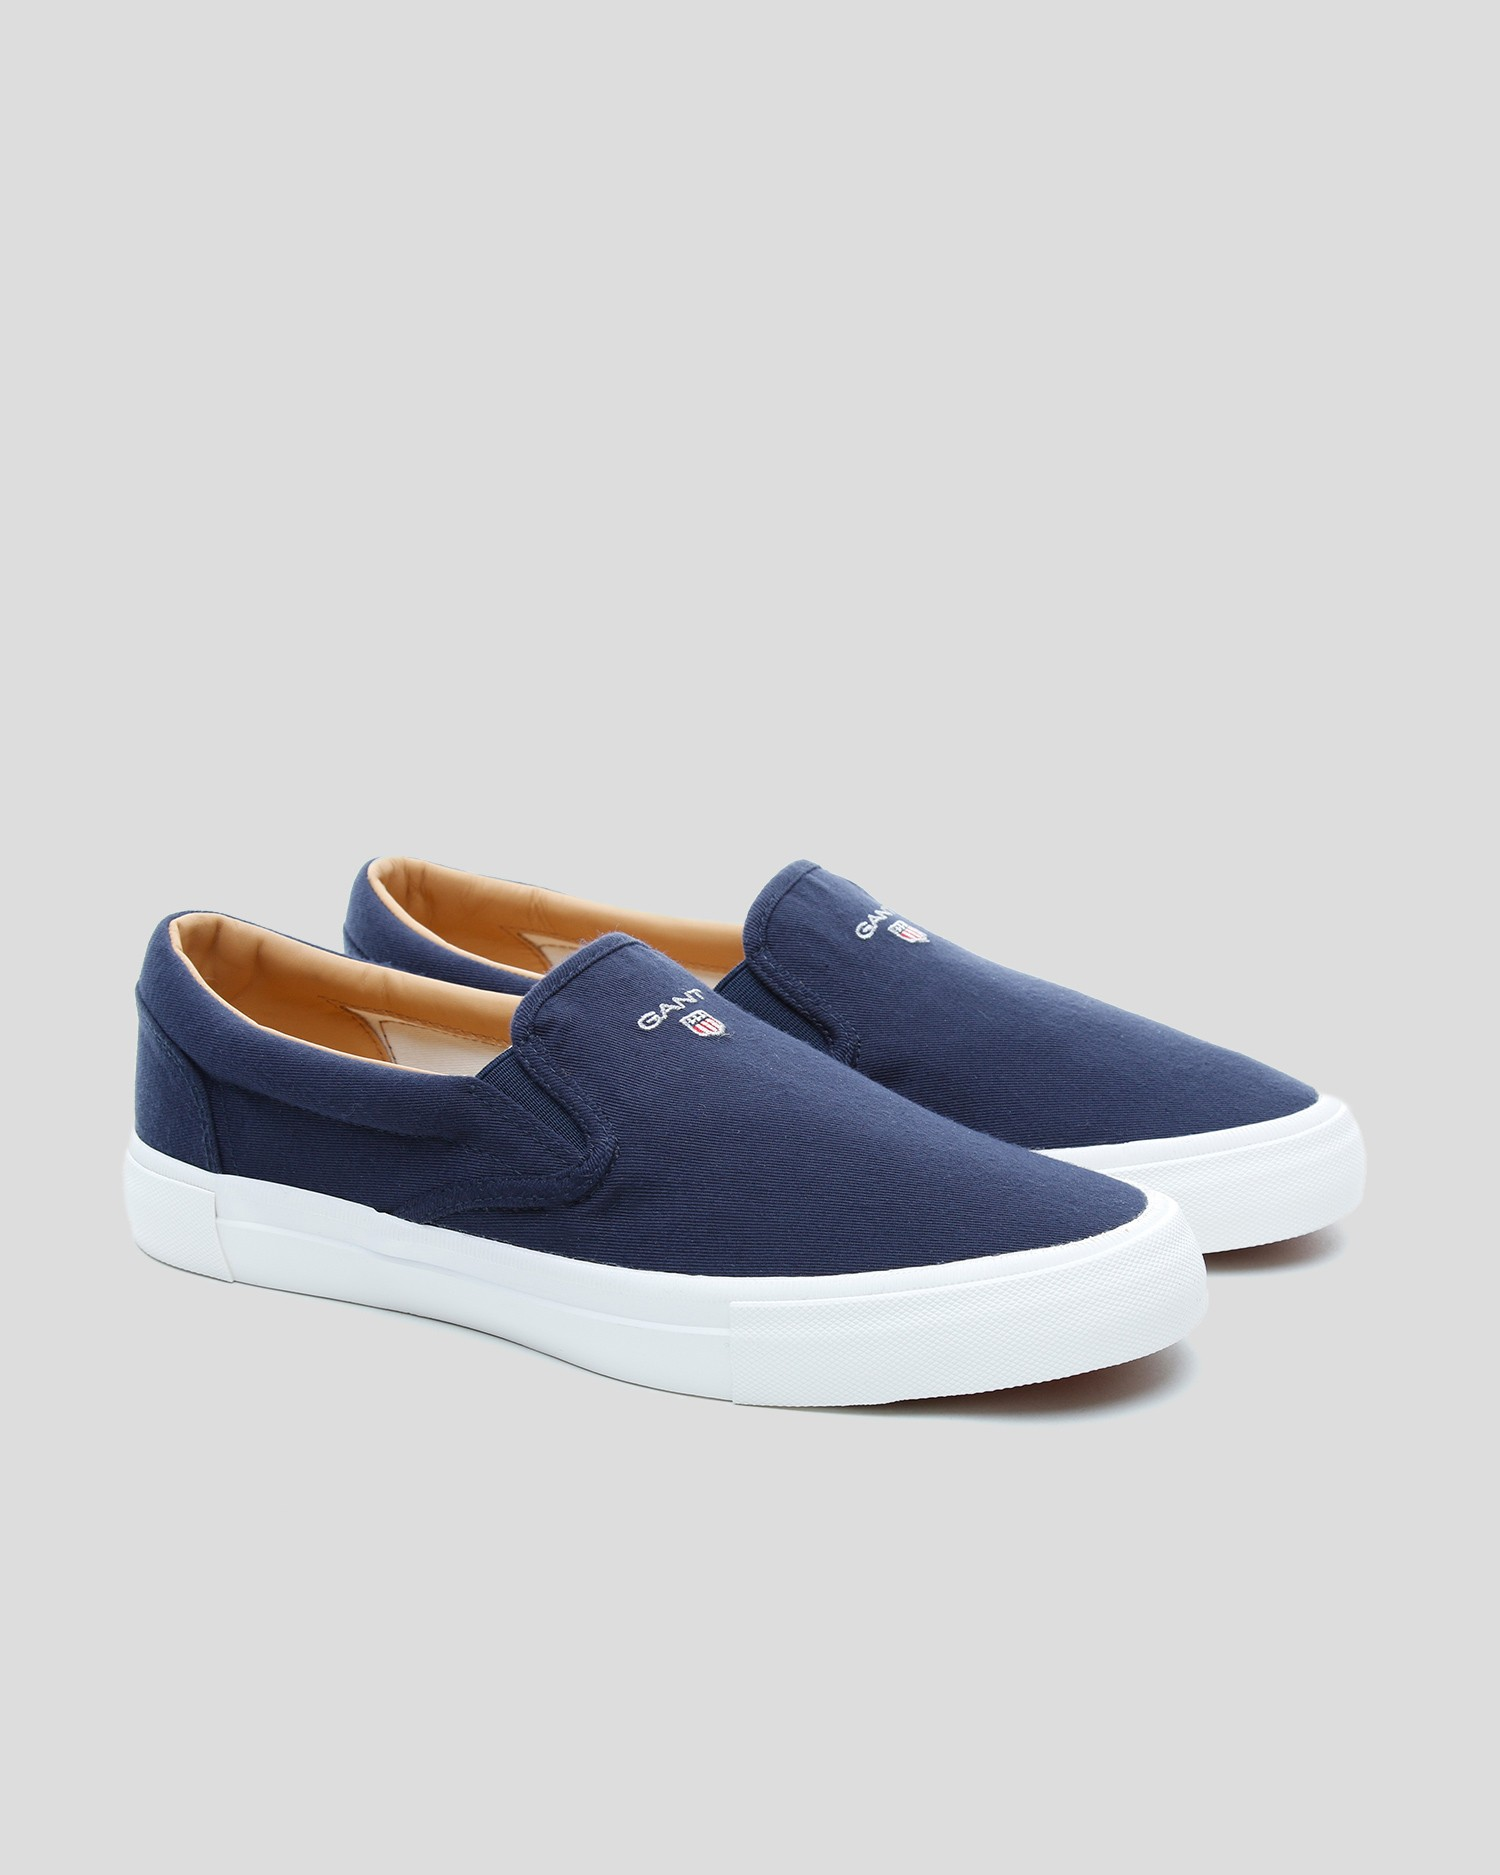 GANT Men's Sneakers - 20678439